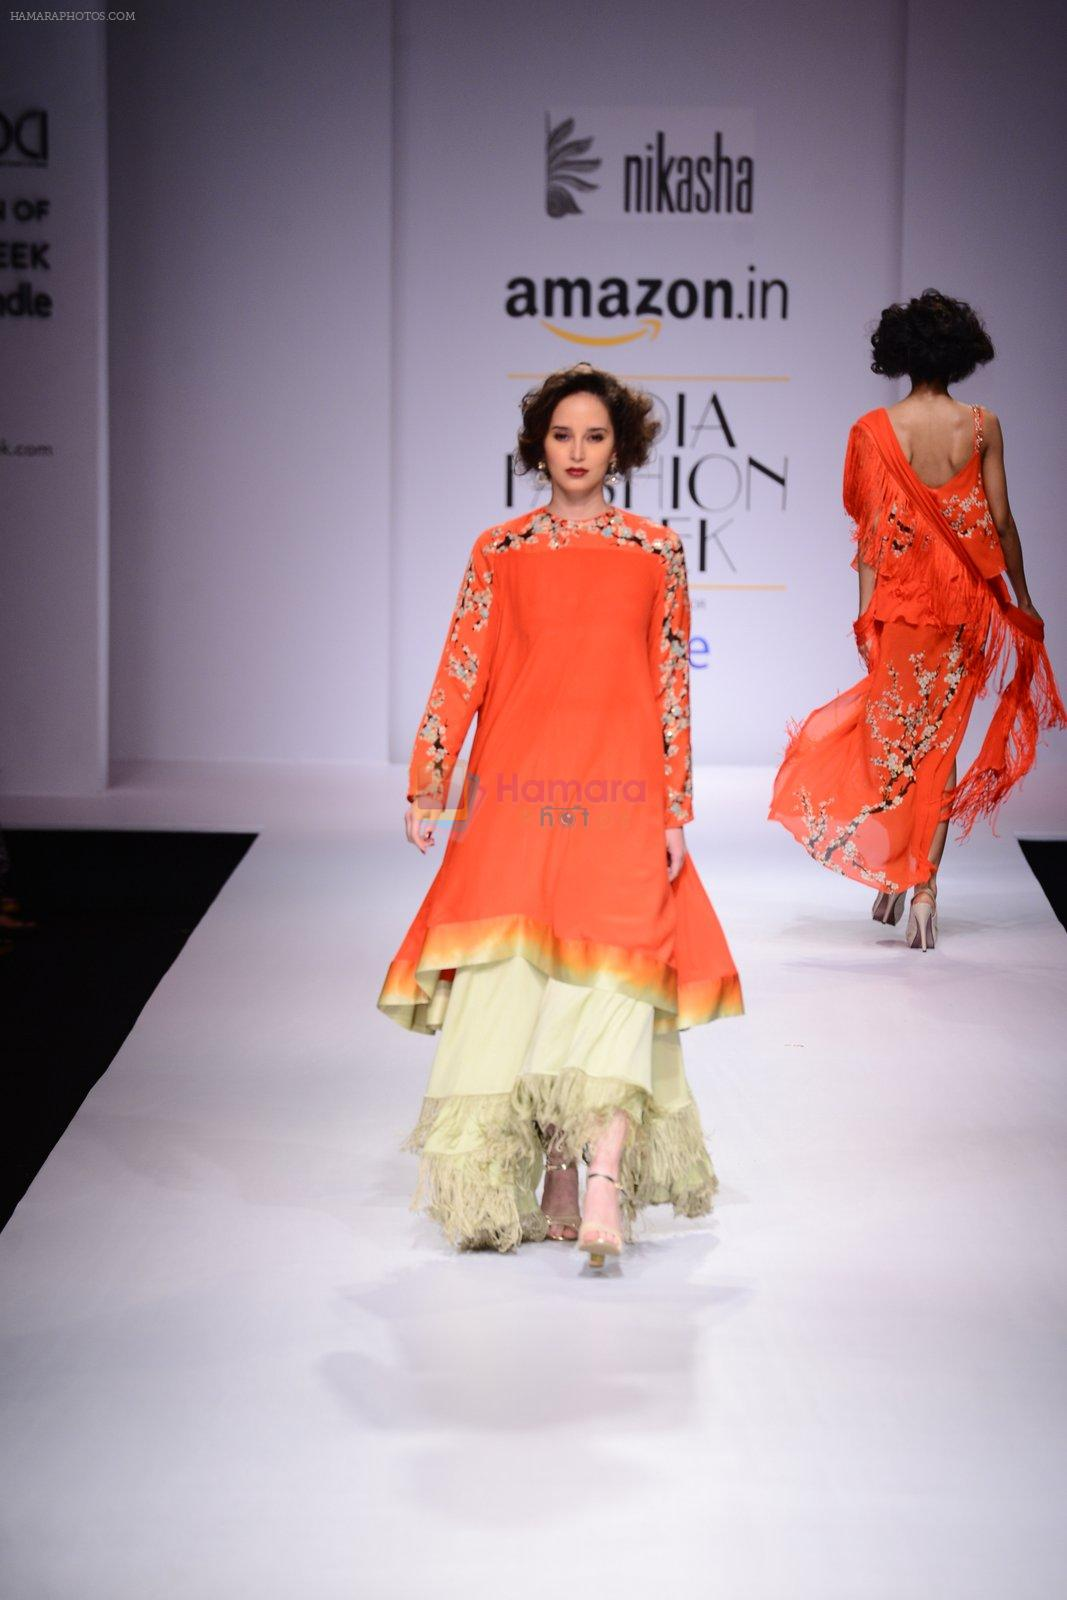 Model walk the ramp for Nikasha on day 1 of Amazon India Fashion Week on 25th March 2015